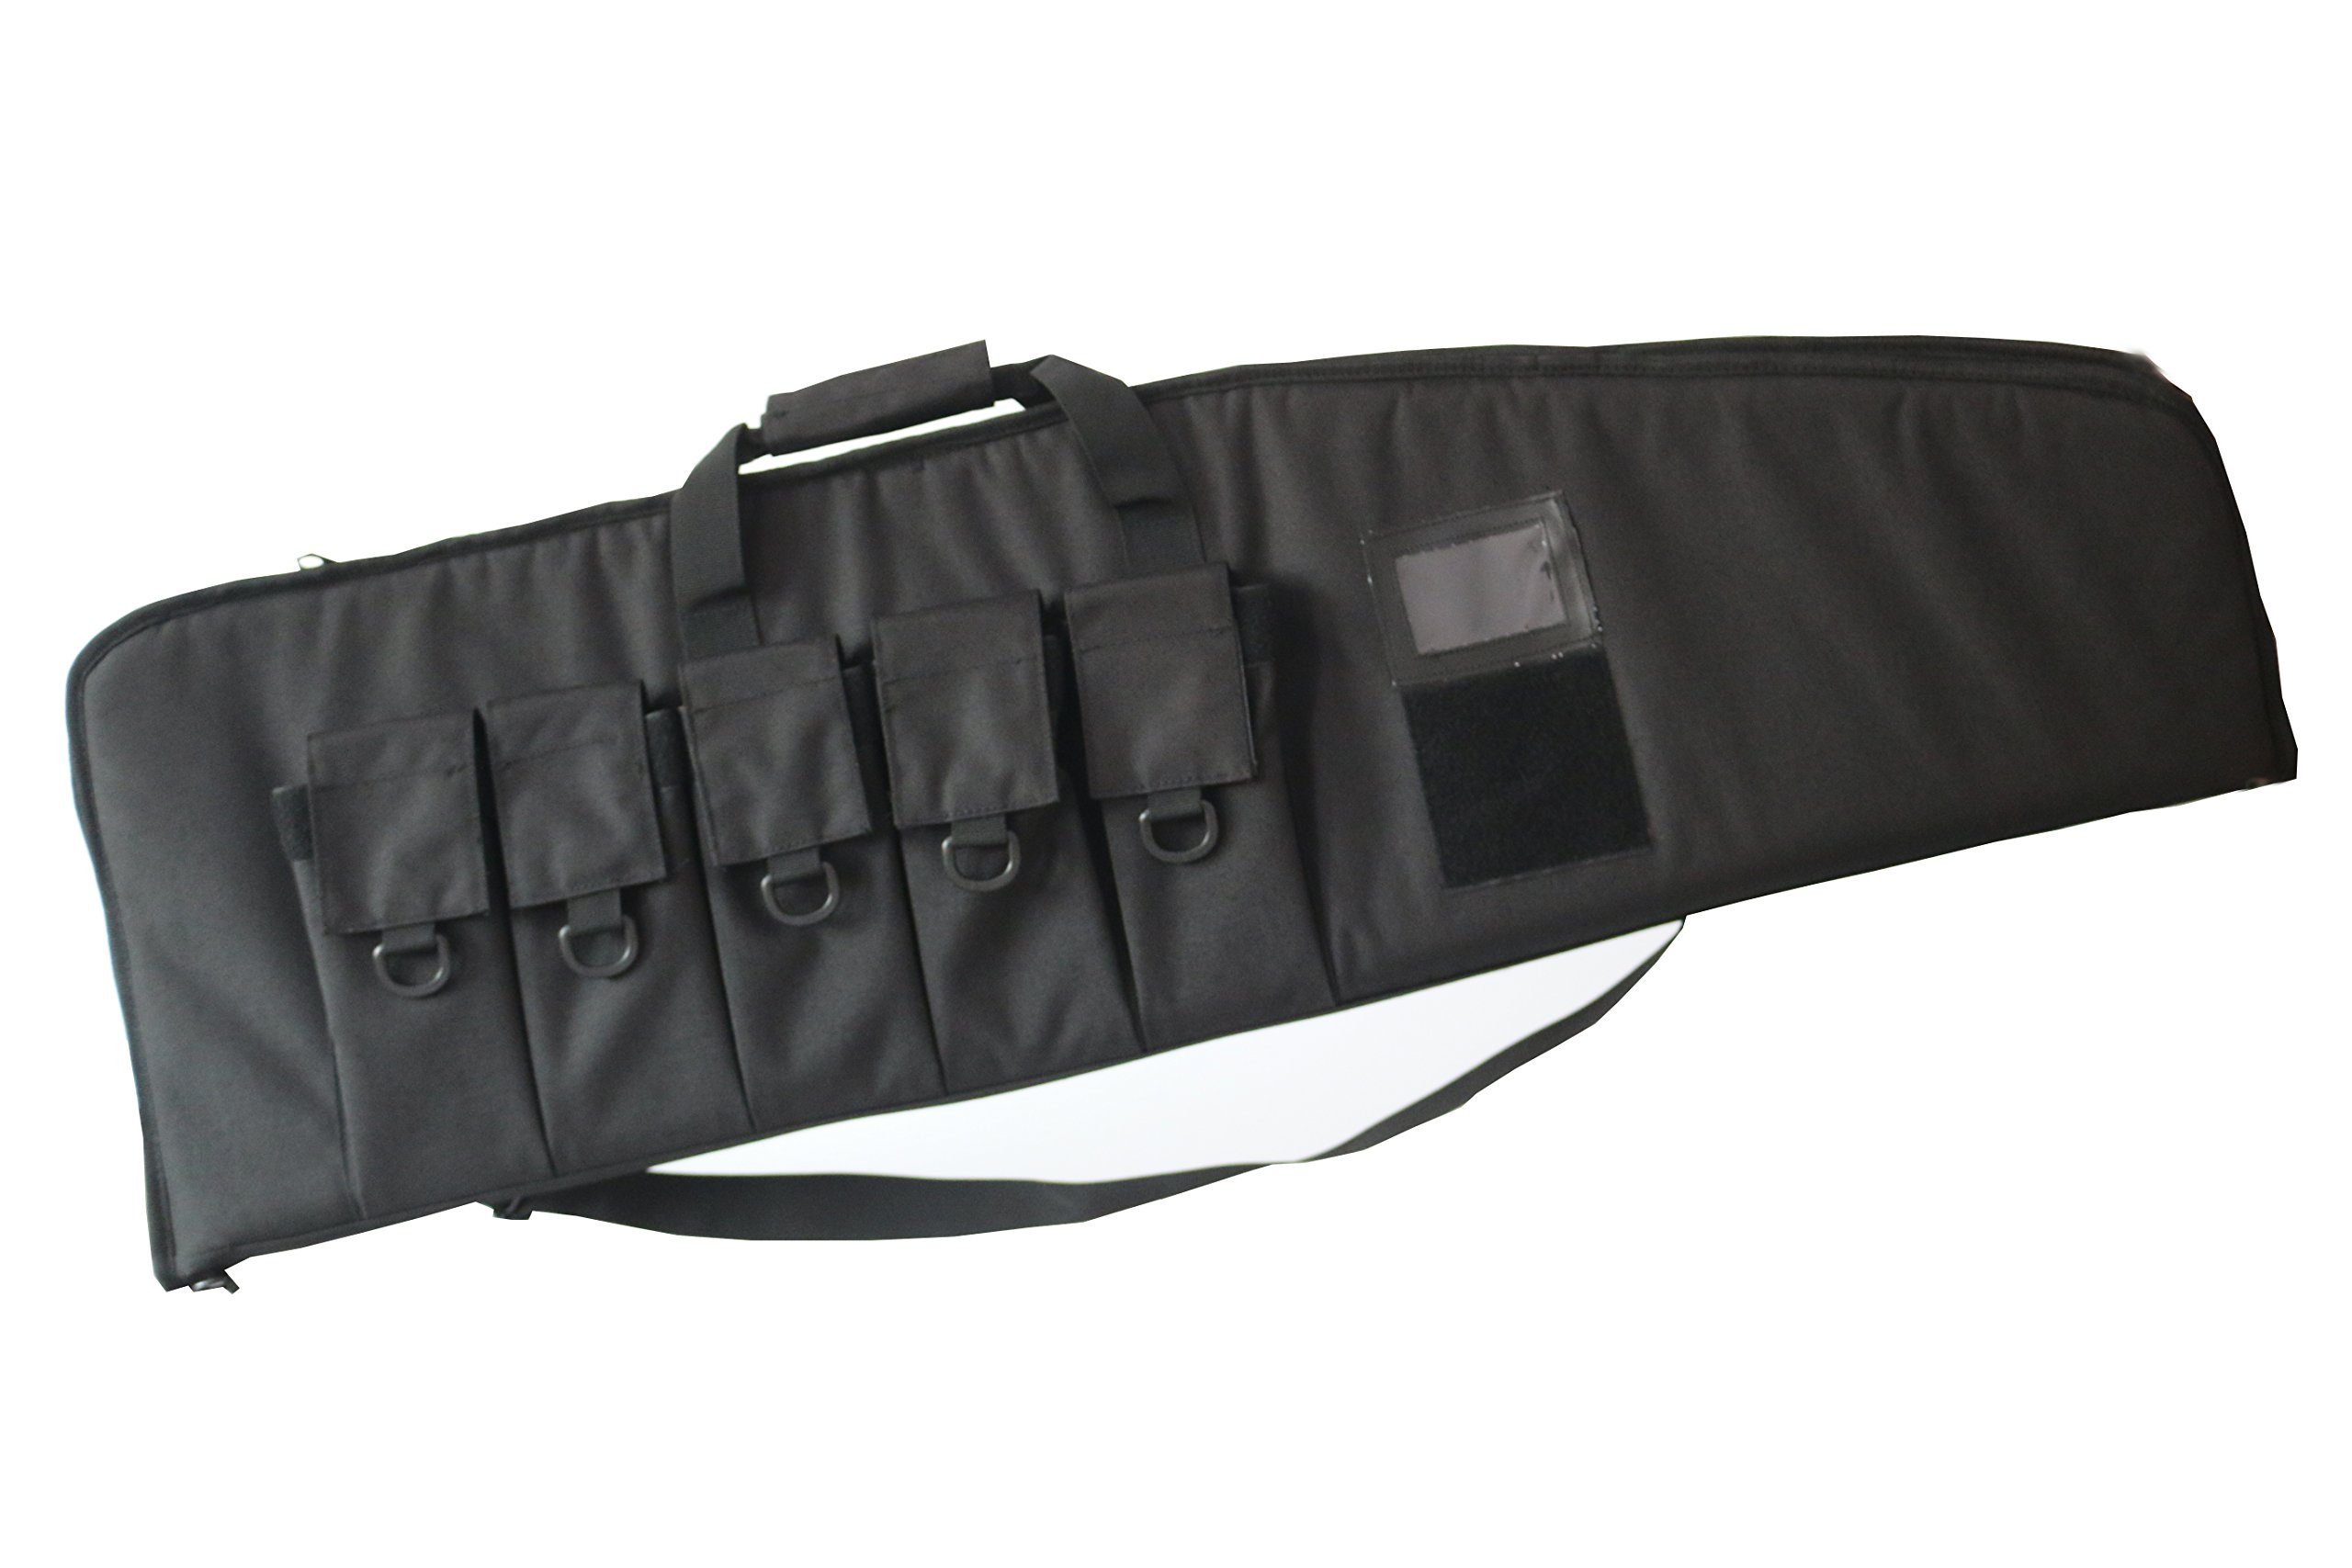 ARMYCAMOUSA Rifle Bag Outdoor Tactical Carbine Cases Water dust Resistant Long Gun Case Bag with Five Magazine Pouches for Hunting Shooting Range Sports Storage and Transport (38'' Black) by ARMYCAMOUSA